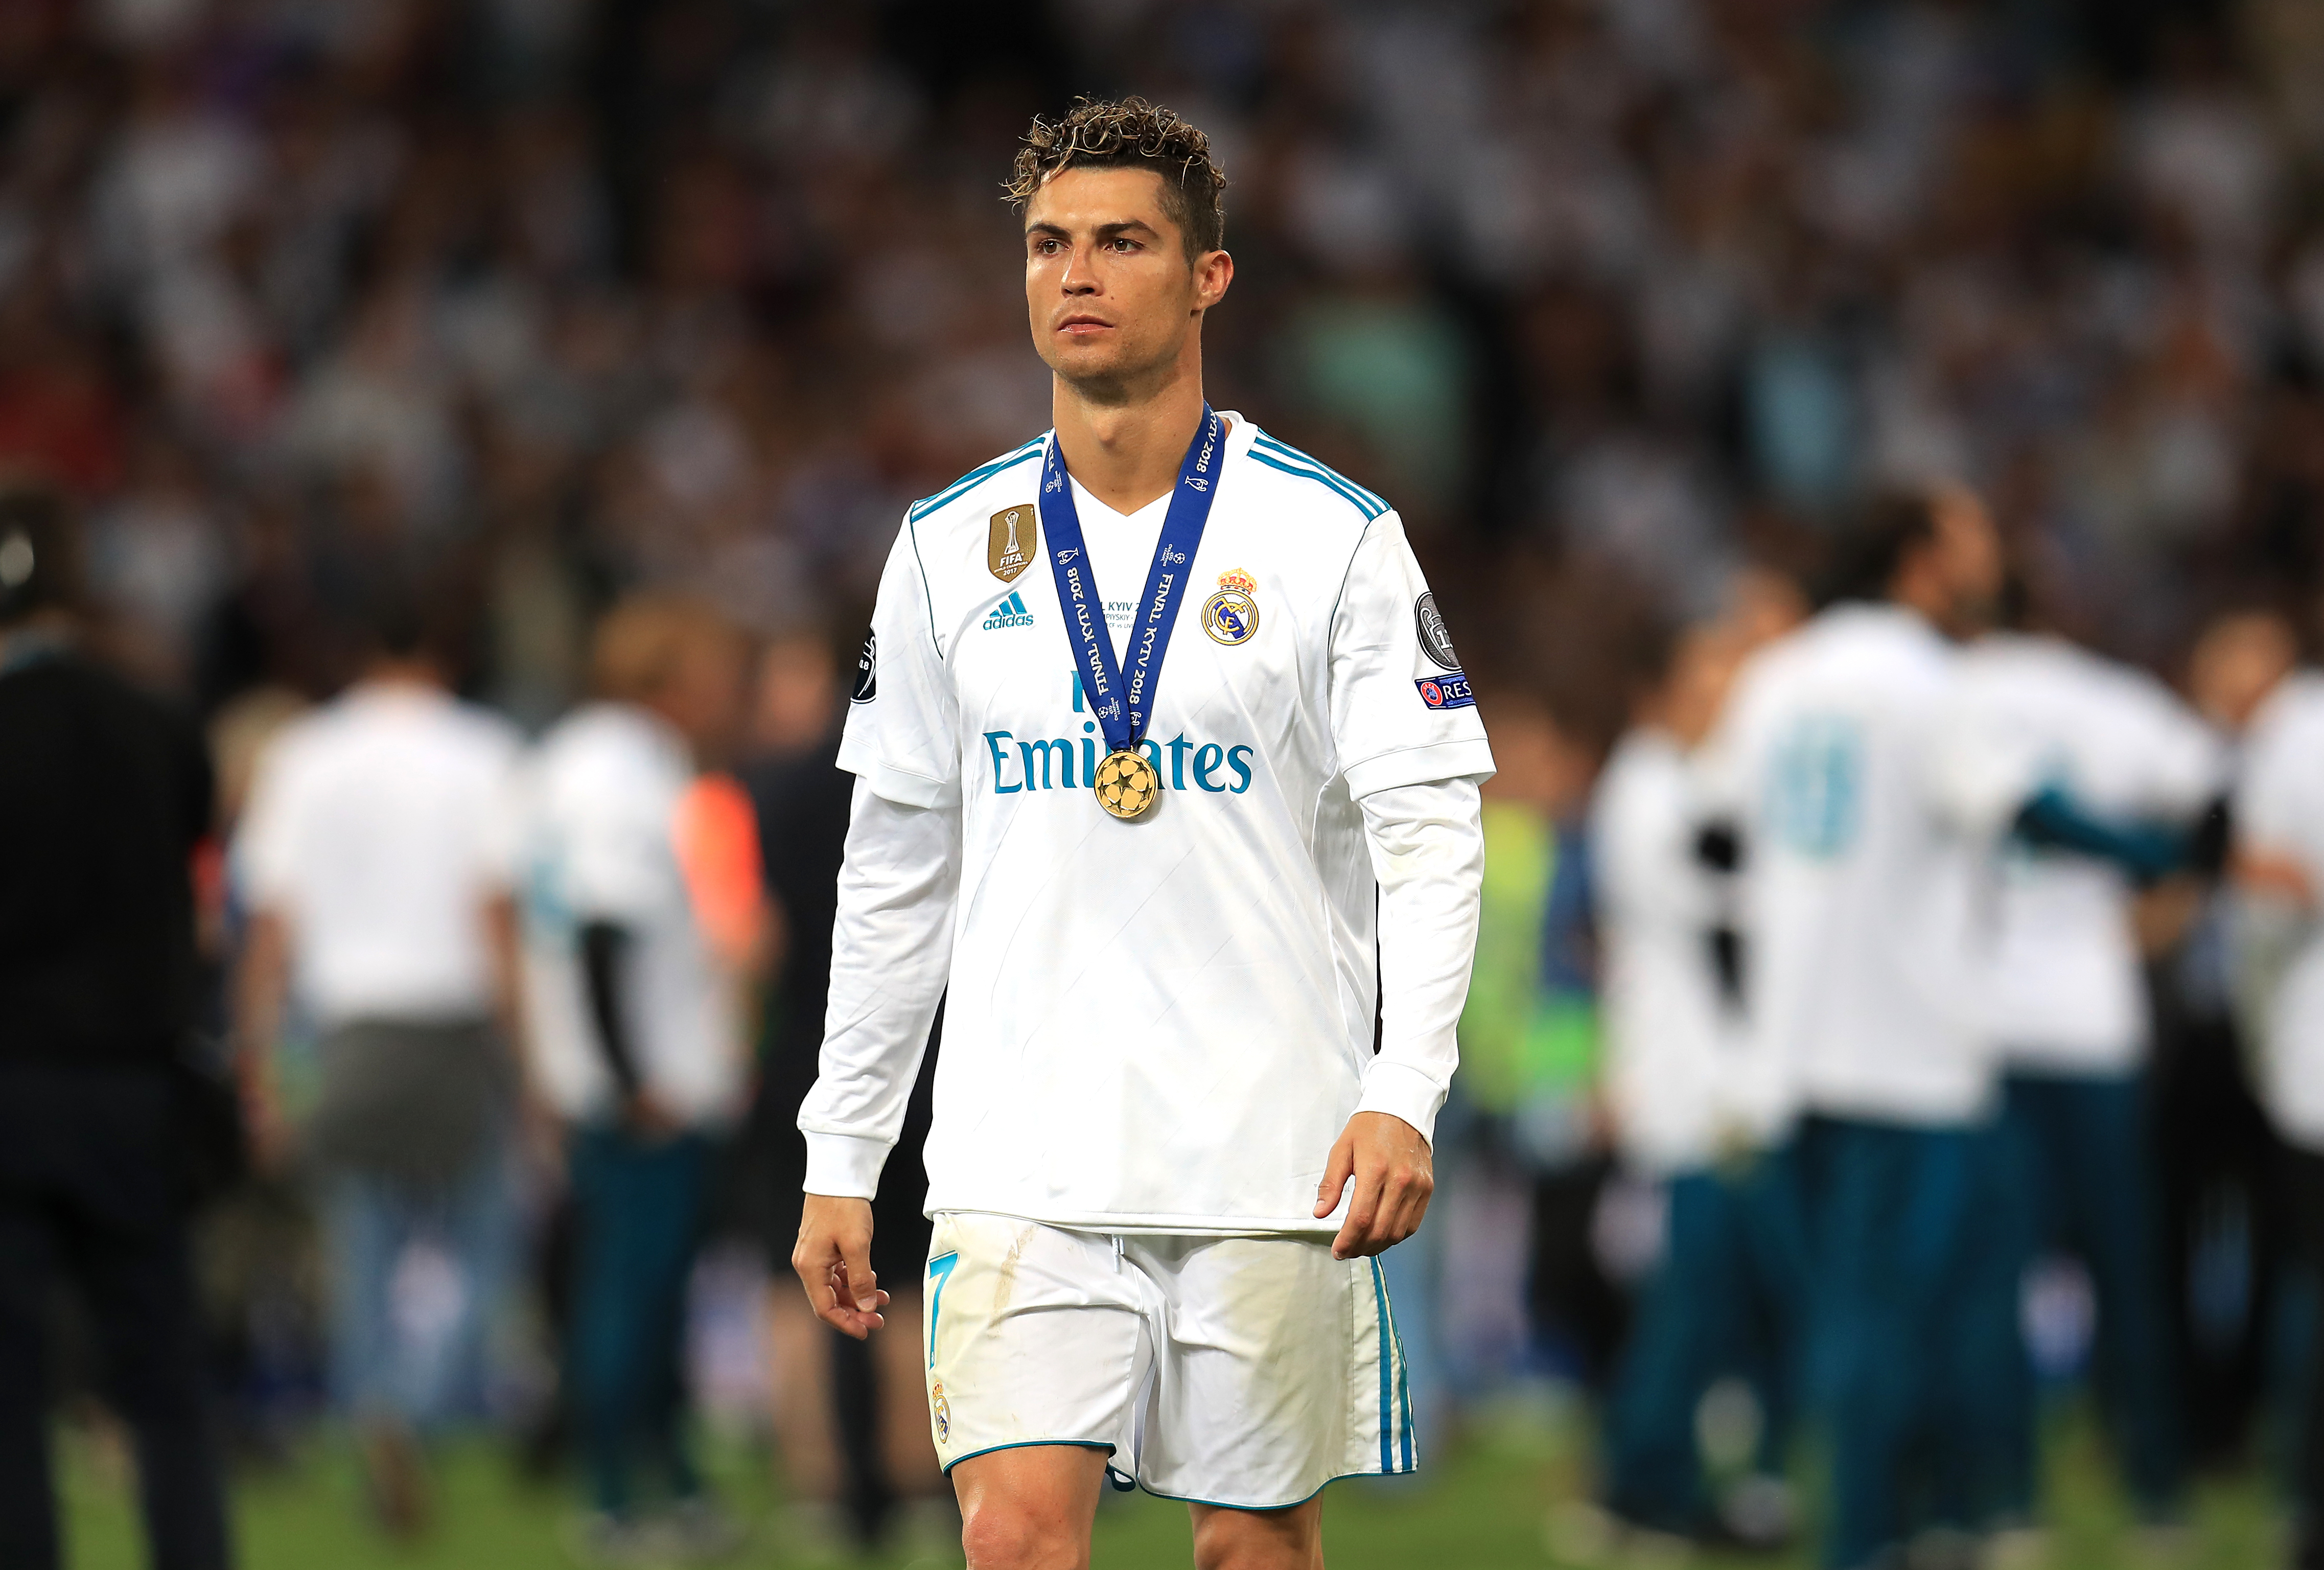 Cristiano Ronaldo again denies rape allegations calls it an 'abominable crime'